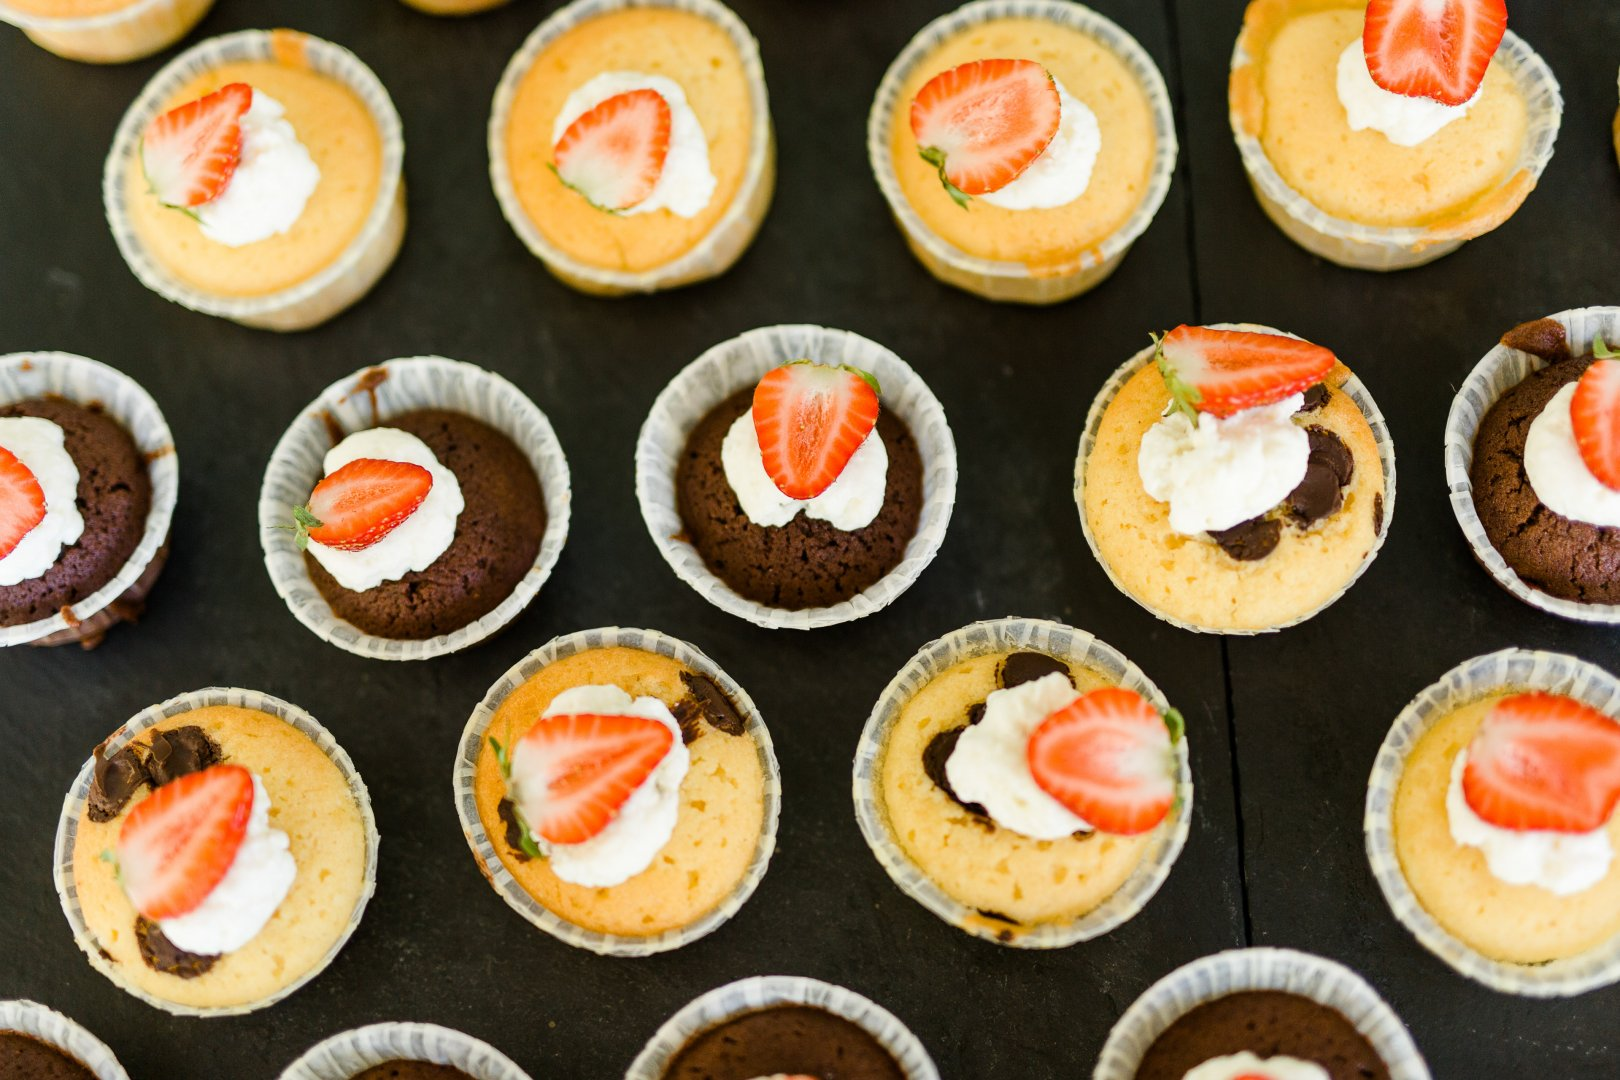 Dish Food Cuisine Cupcake Ingredient Dessert Buttercream Cream cheese Baking Icing Baked goods Candy corn Cake Finger food Cup Cream Canapé Produce Recipe Muffin Hors d'oeuvre Whipped cream Mascarpone Dairy appetizer Carrot cake